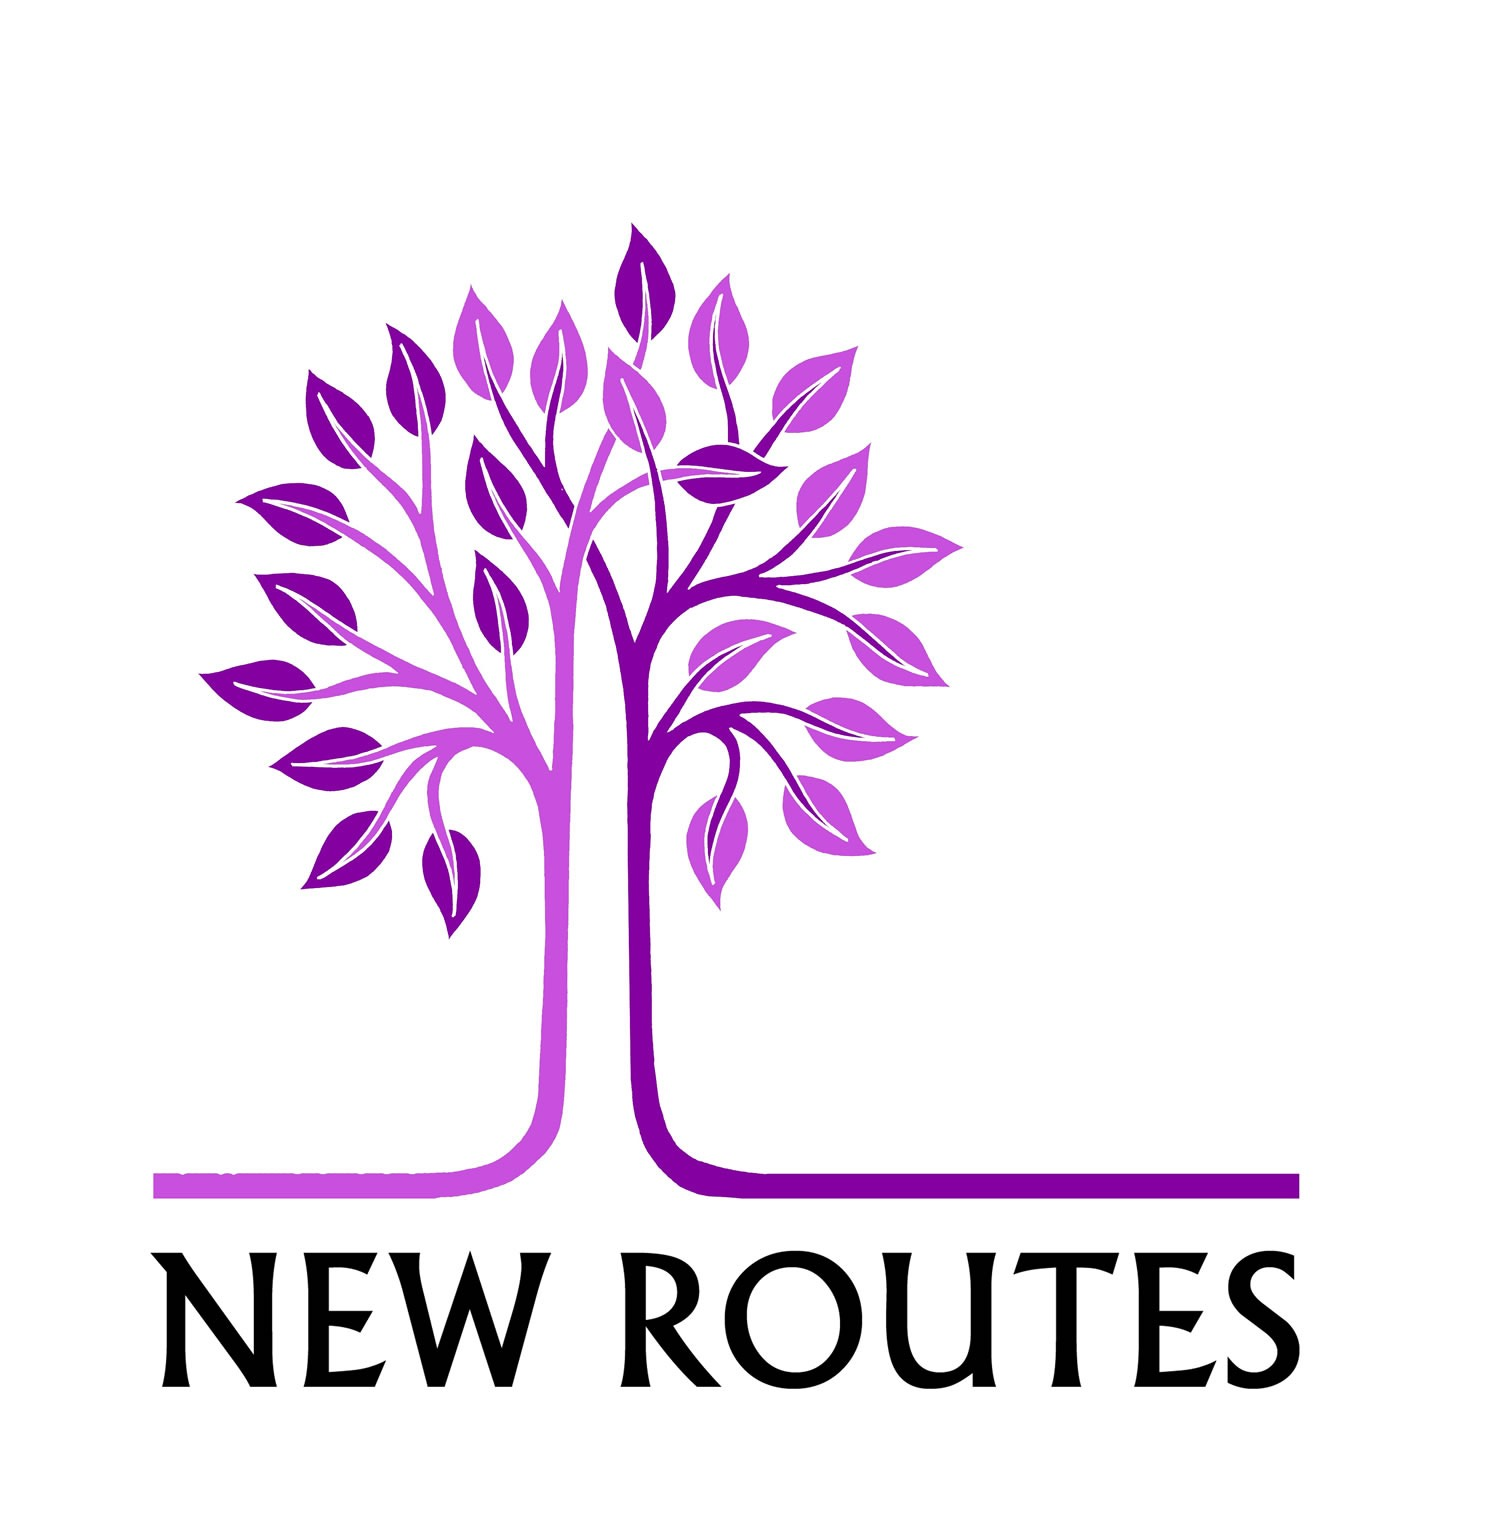 New Routes